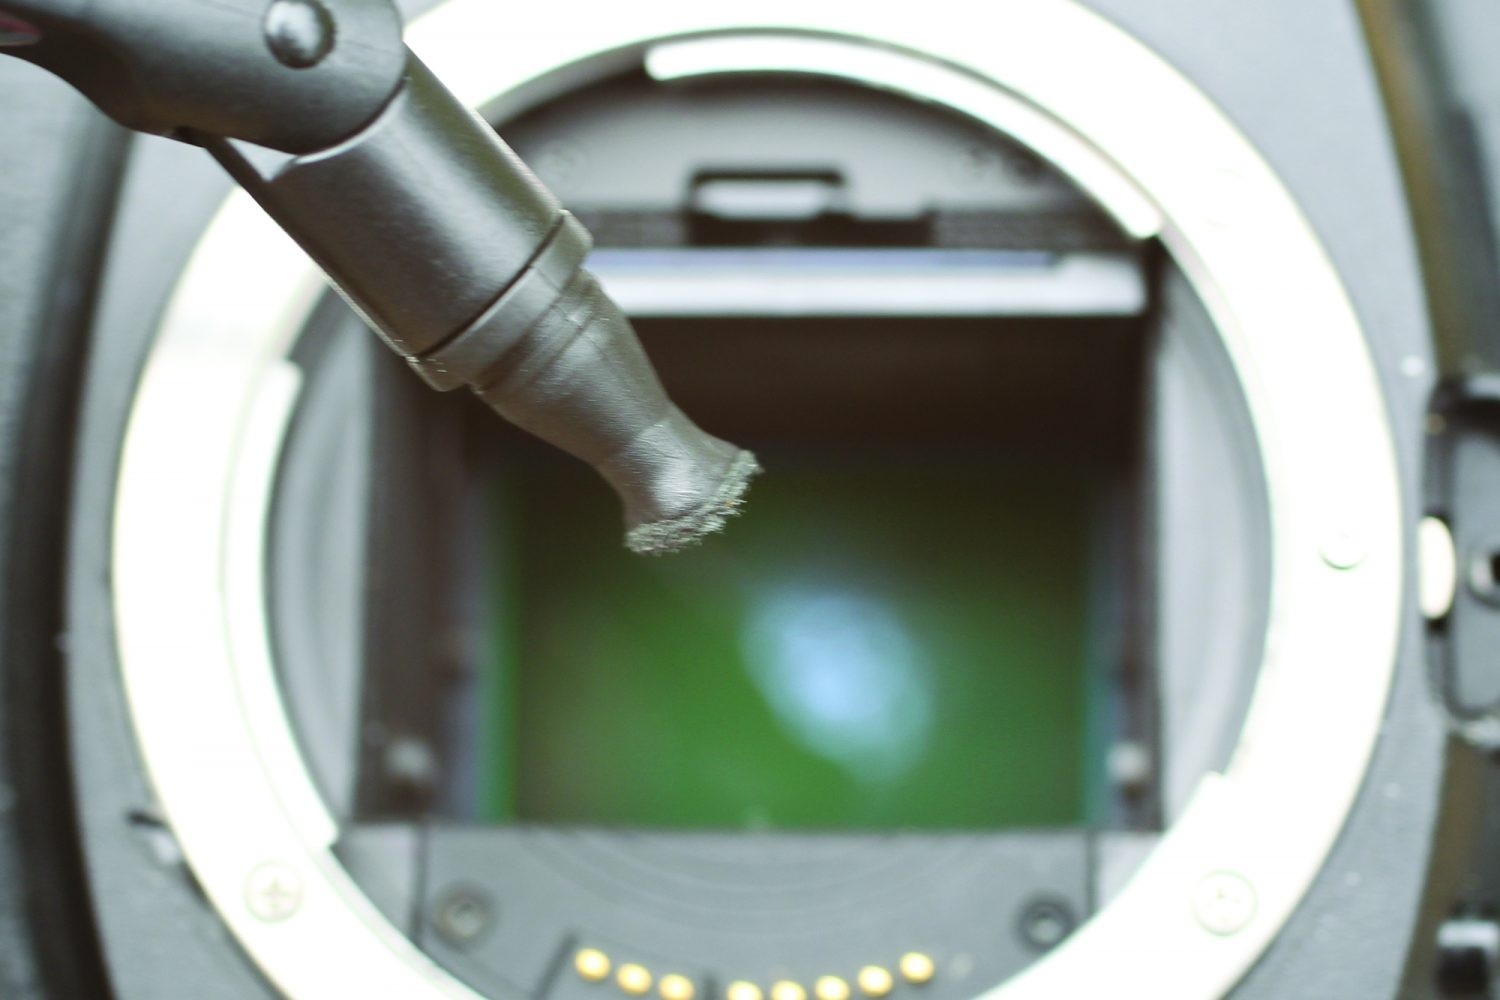 Cleaning your DSLR camera: step 2. Credit: Ian Evenden